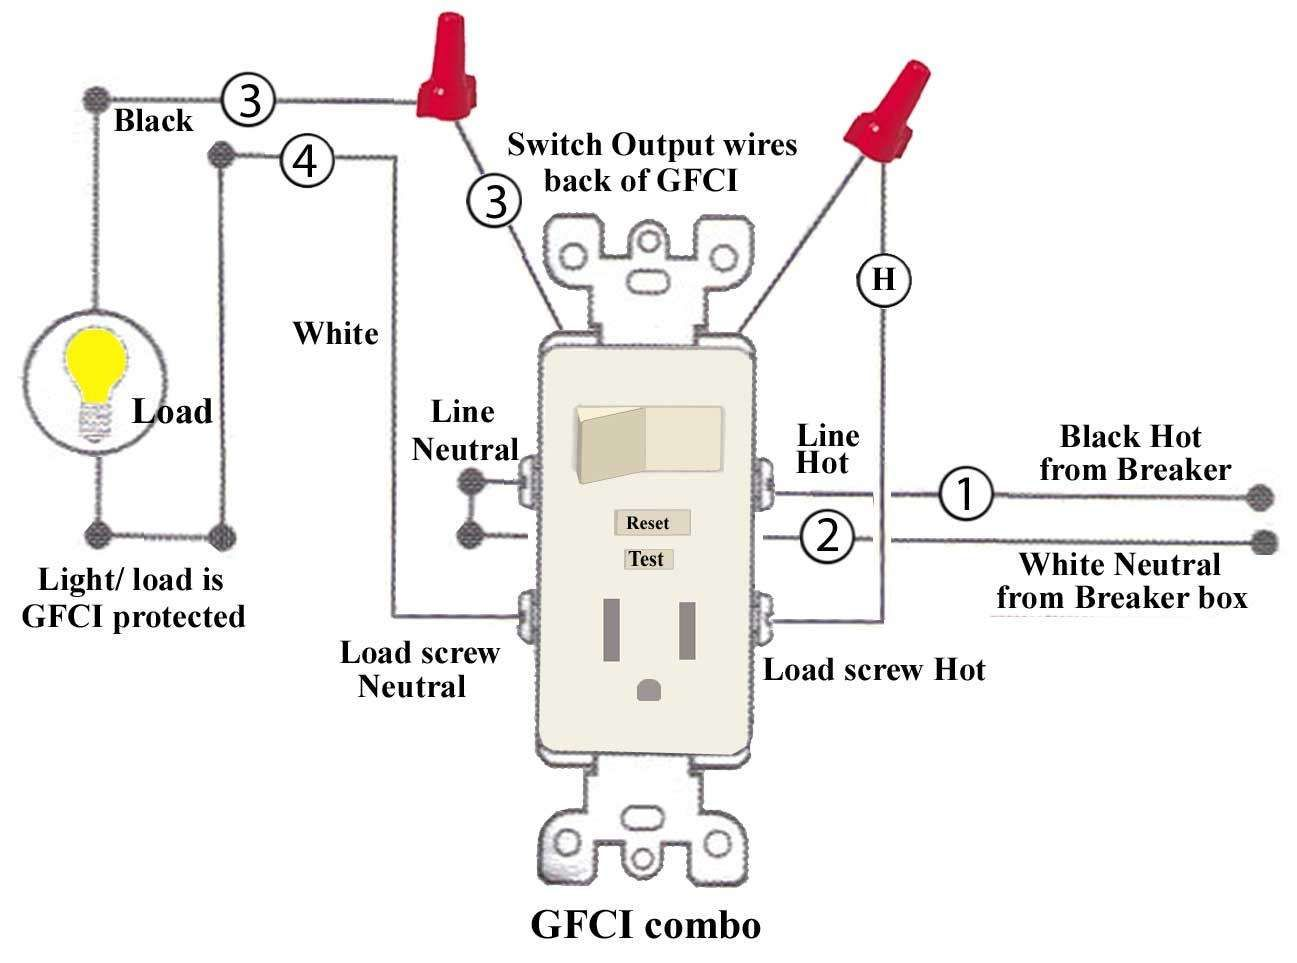 wiring diagram outlets beautiful wiring diagram outlets splendid line wiring diagram help signalsbrake light code for [ 1297 x 963 Pixel ]